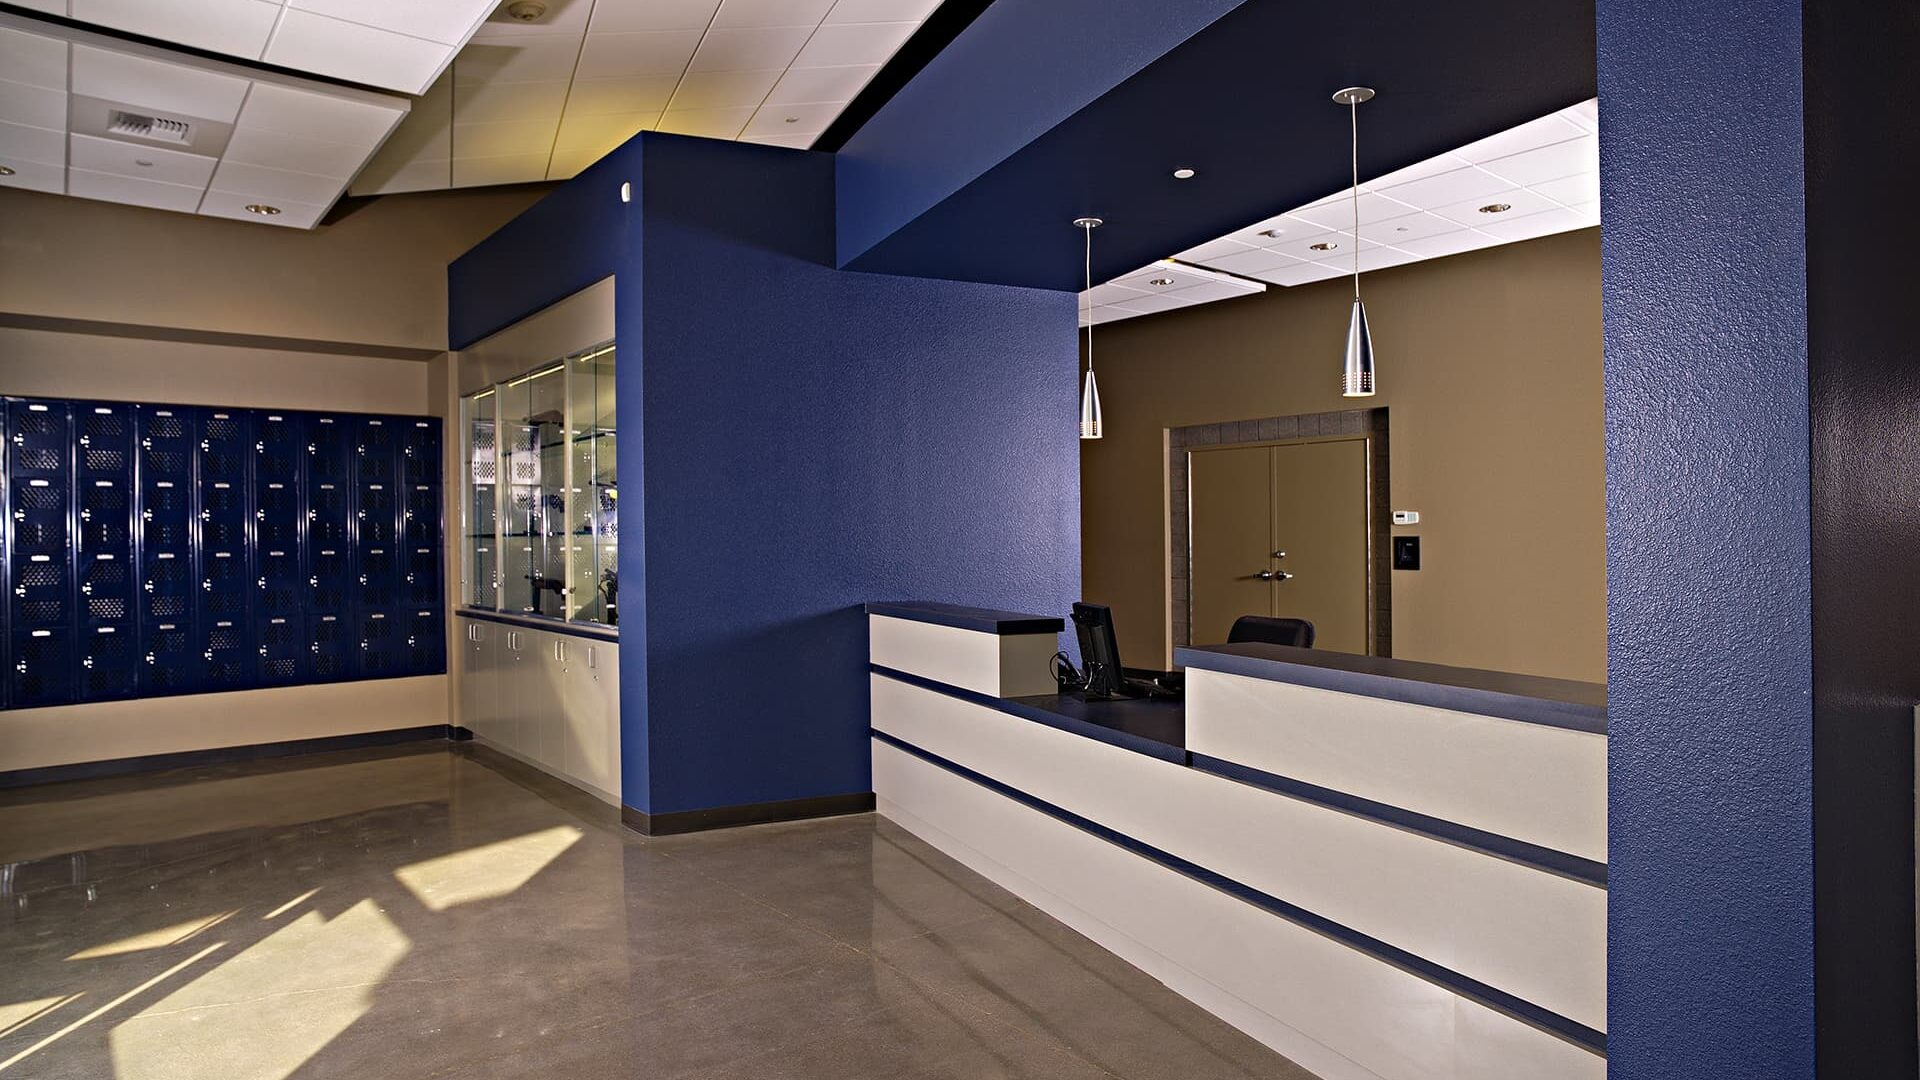 fresno police training facility project detail lp consulting